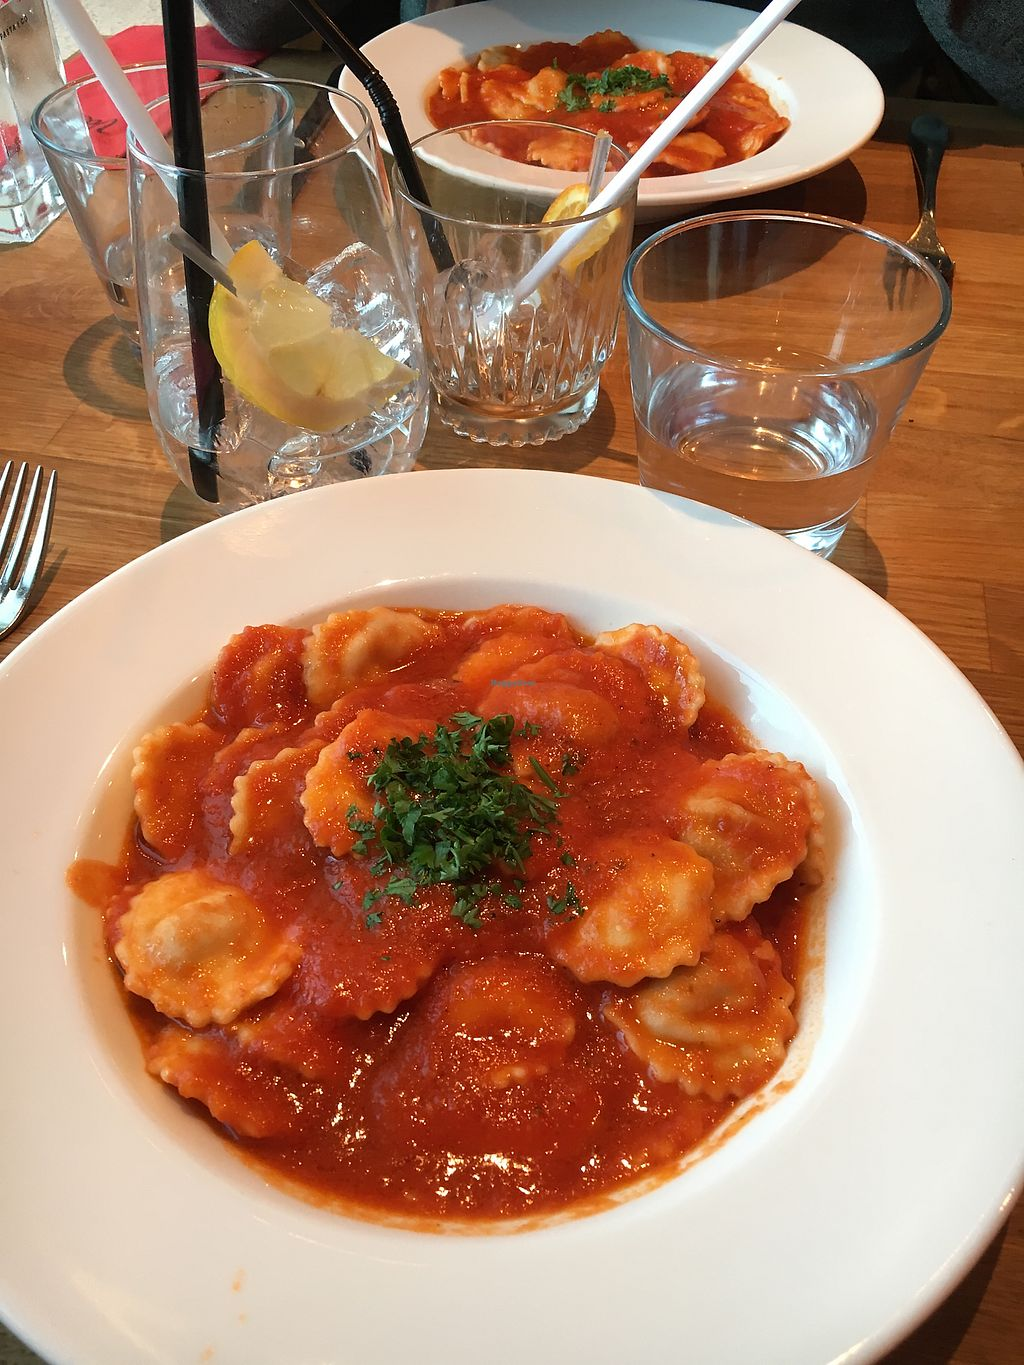 "Photo of Vaelsa  by <a href=""/members/profile/SeitanSeitanSeitan"">SeitanSeitanSeitan</a> <br/>The ravioli. At the moment with tomato sauce <br/> July 29, 2017  - <a href='/contact/abuse/image/95140/286268'>Report</a>"